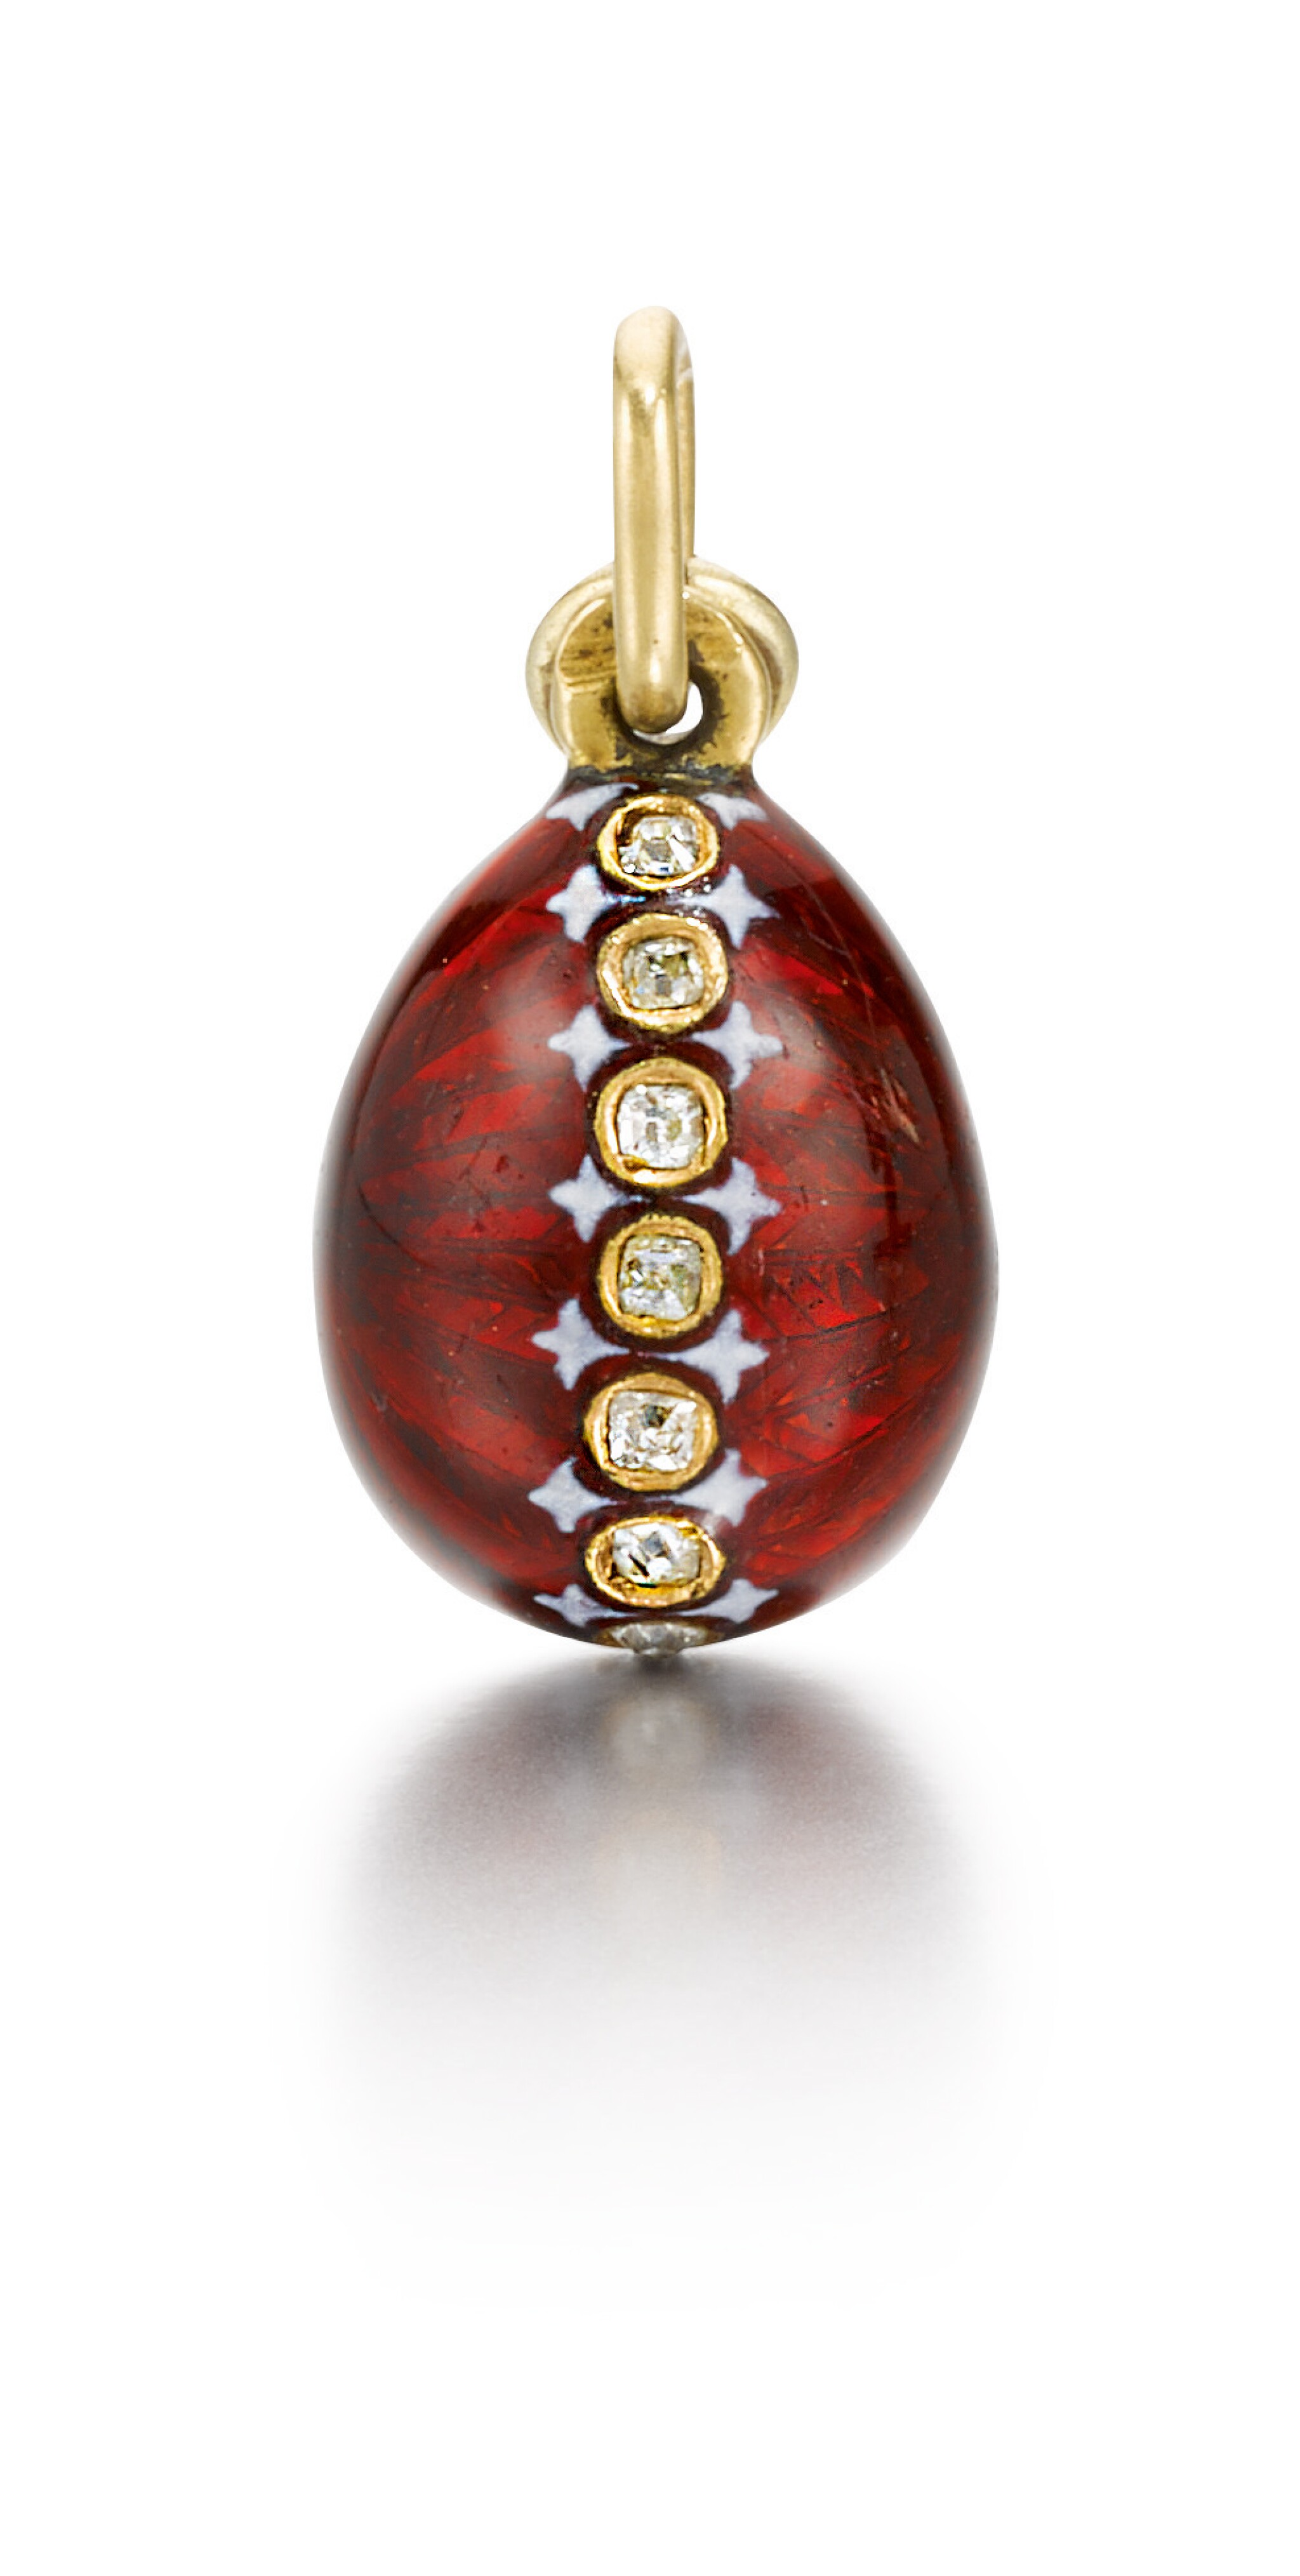 A jewelled gold and enamel egg pendant, Moscow, late 19th / early 20th century